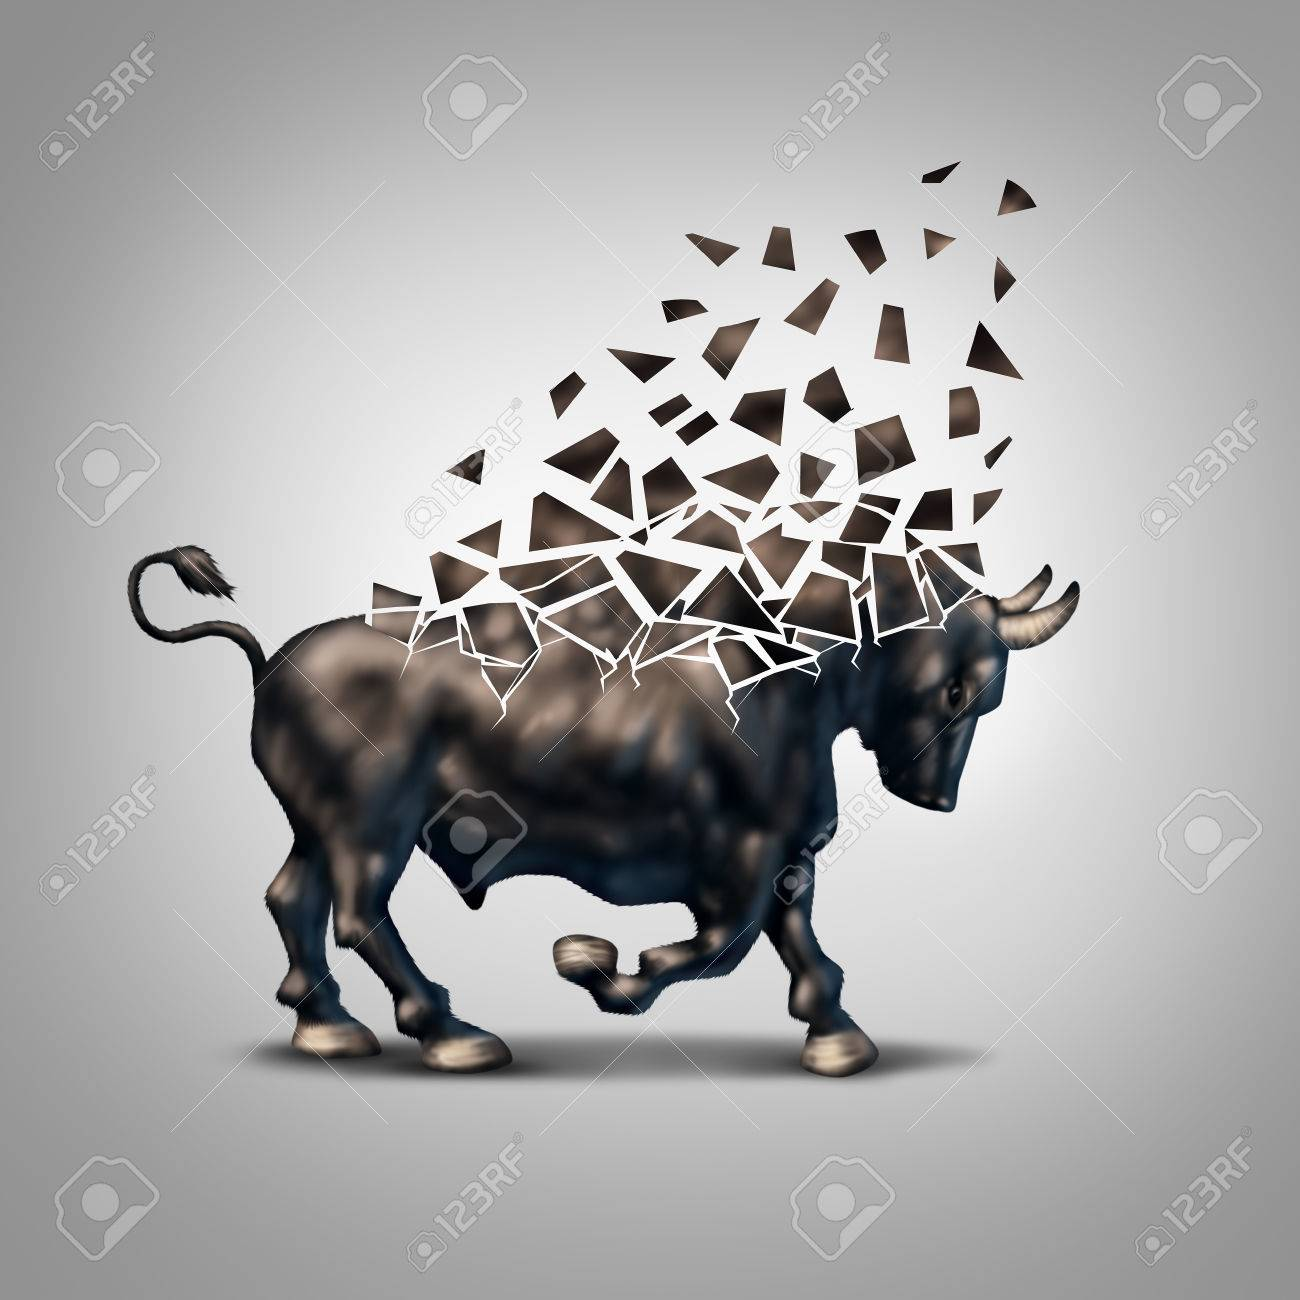 Fragile bull market financial crisis concept as an economic symbol fragile bull market financial crisis concept as an economic symbol for a crumbling positive forecast and buycottarizona